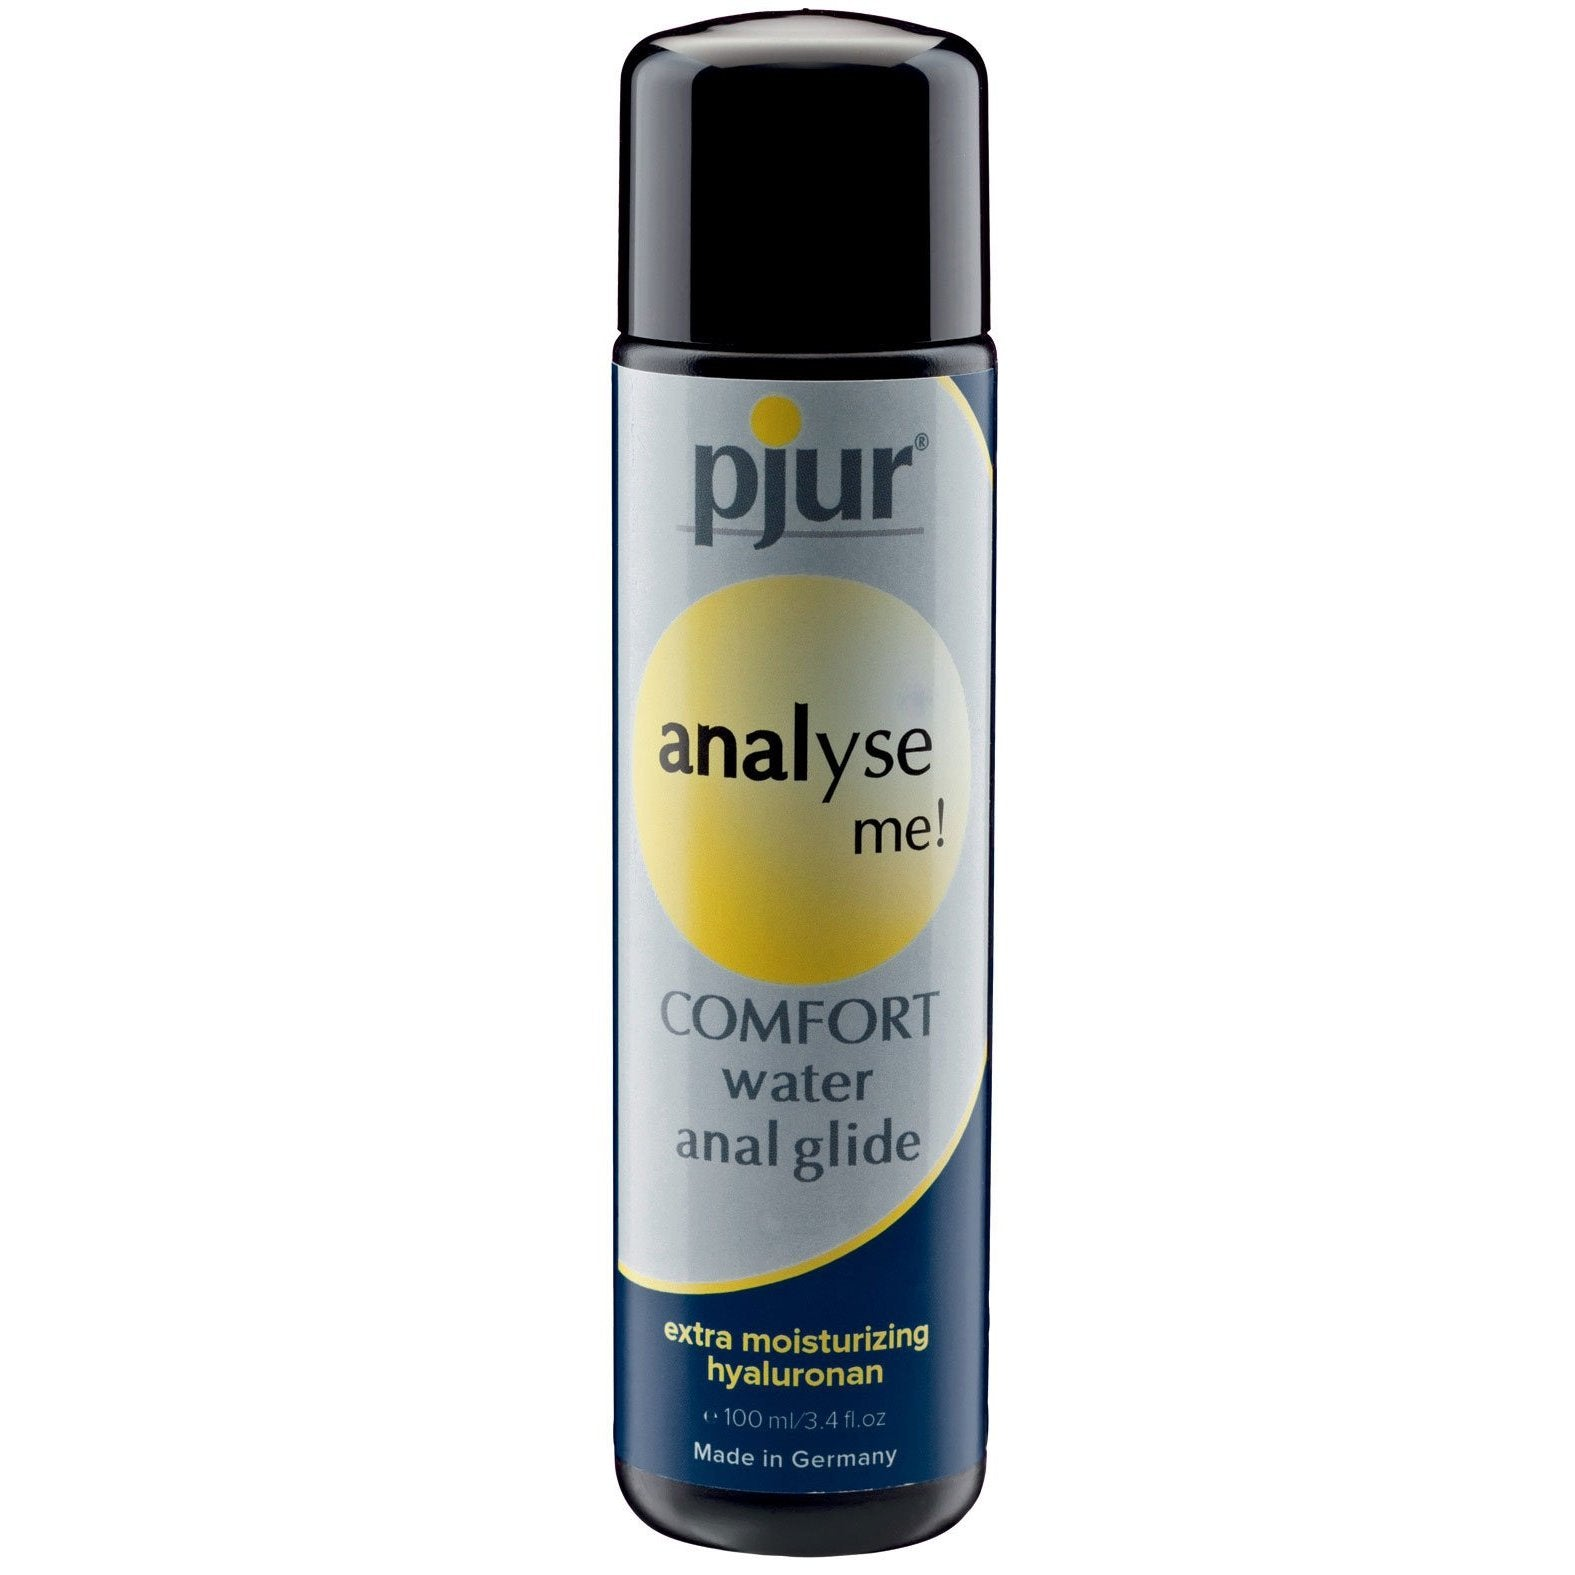 Pjur Analyse Me Water Based Personal Lubricant - 100ml - Gay Men's Sex Toys - Adam's Toy Box